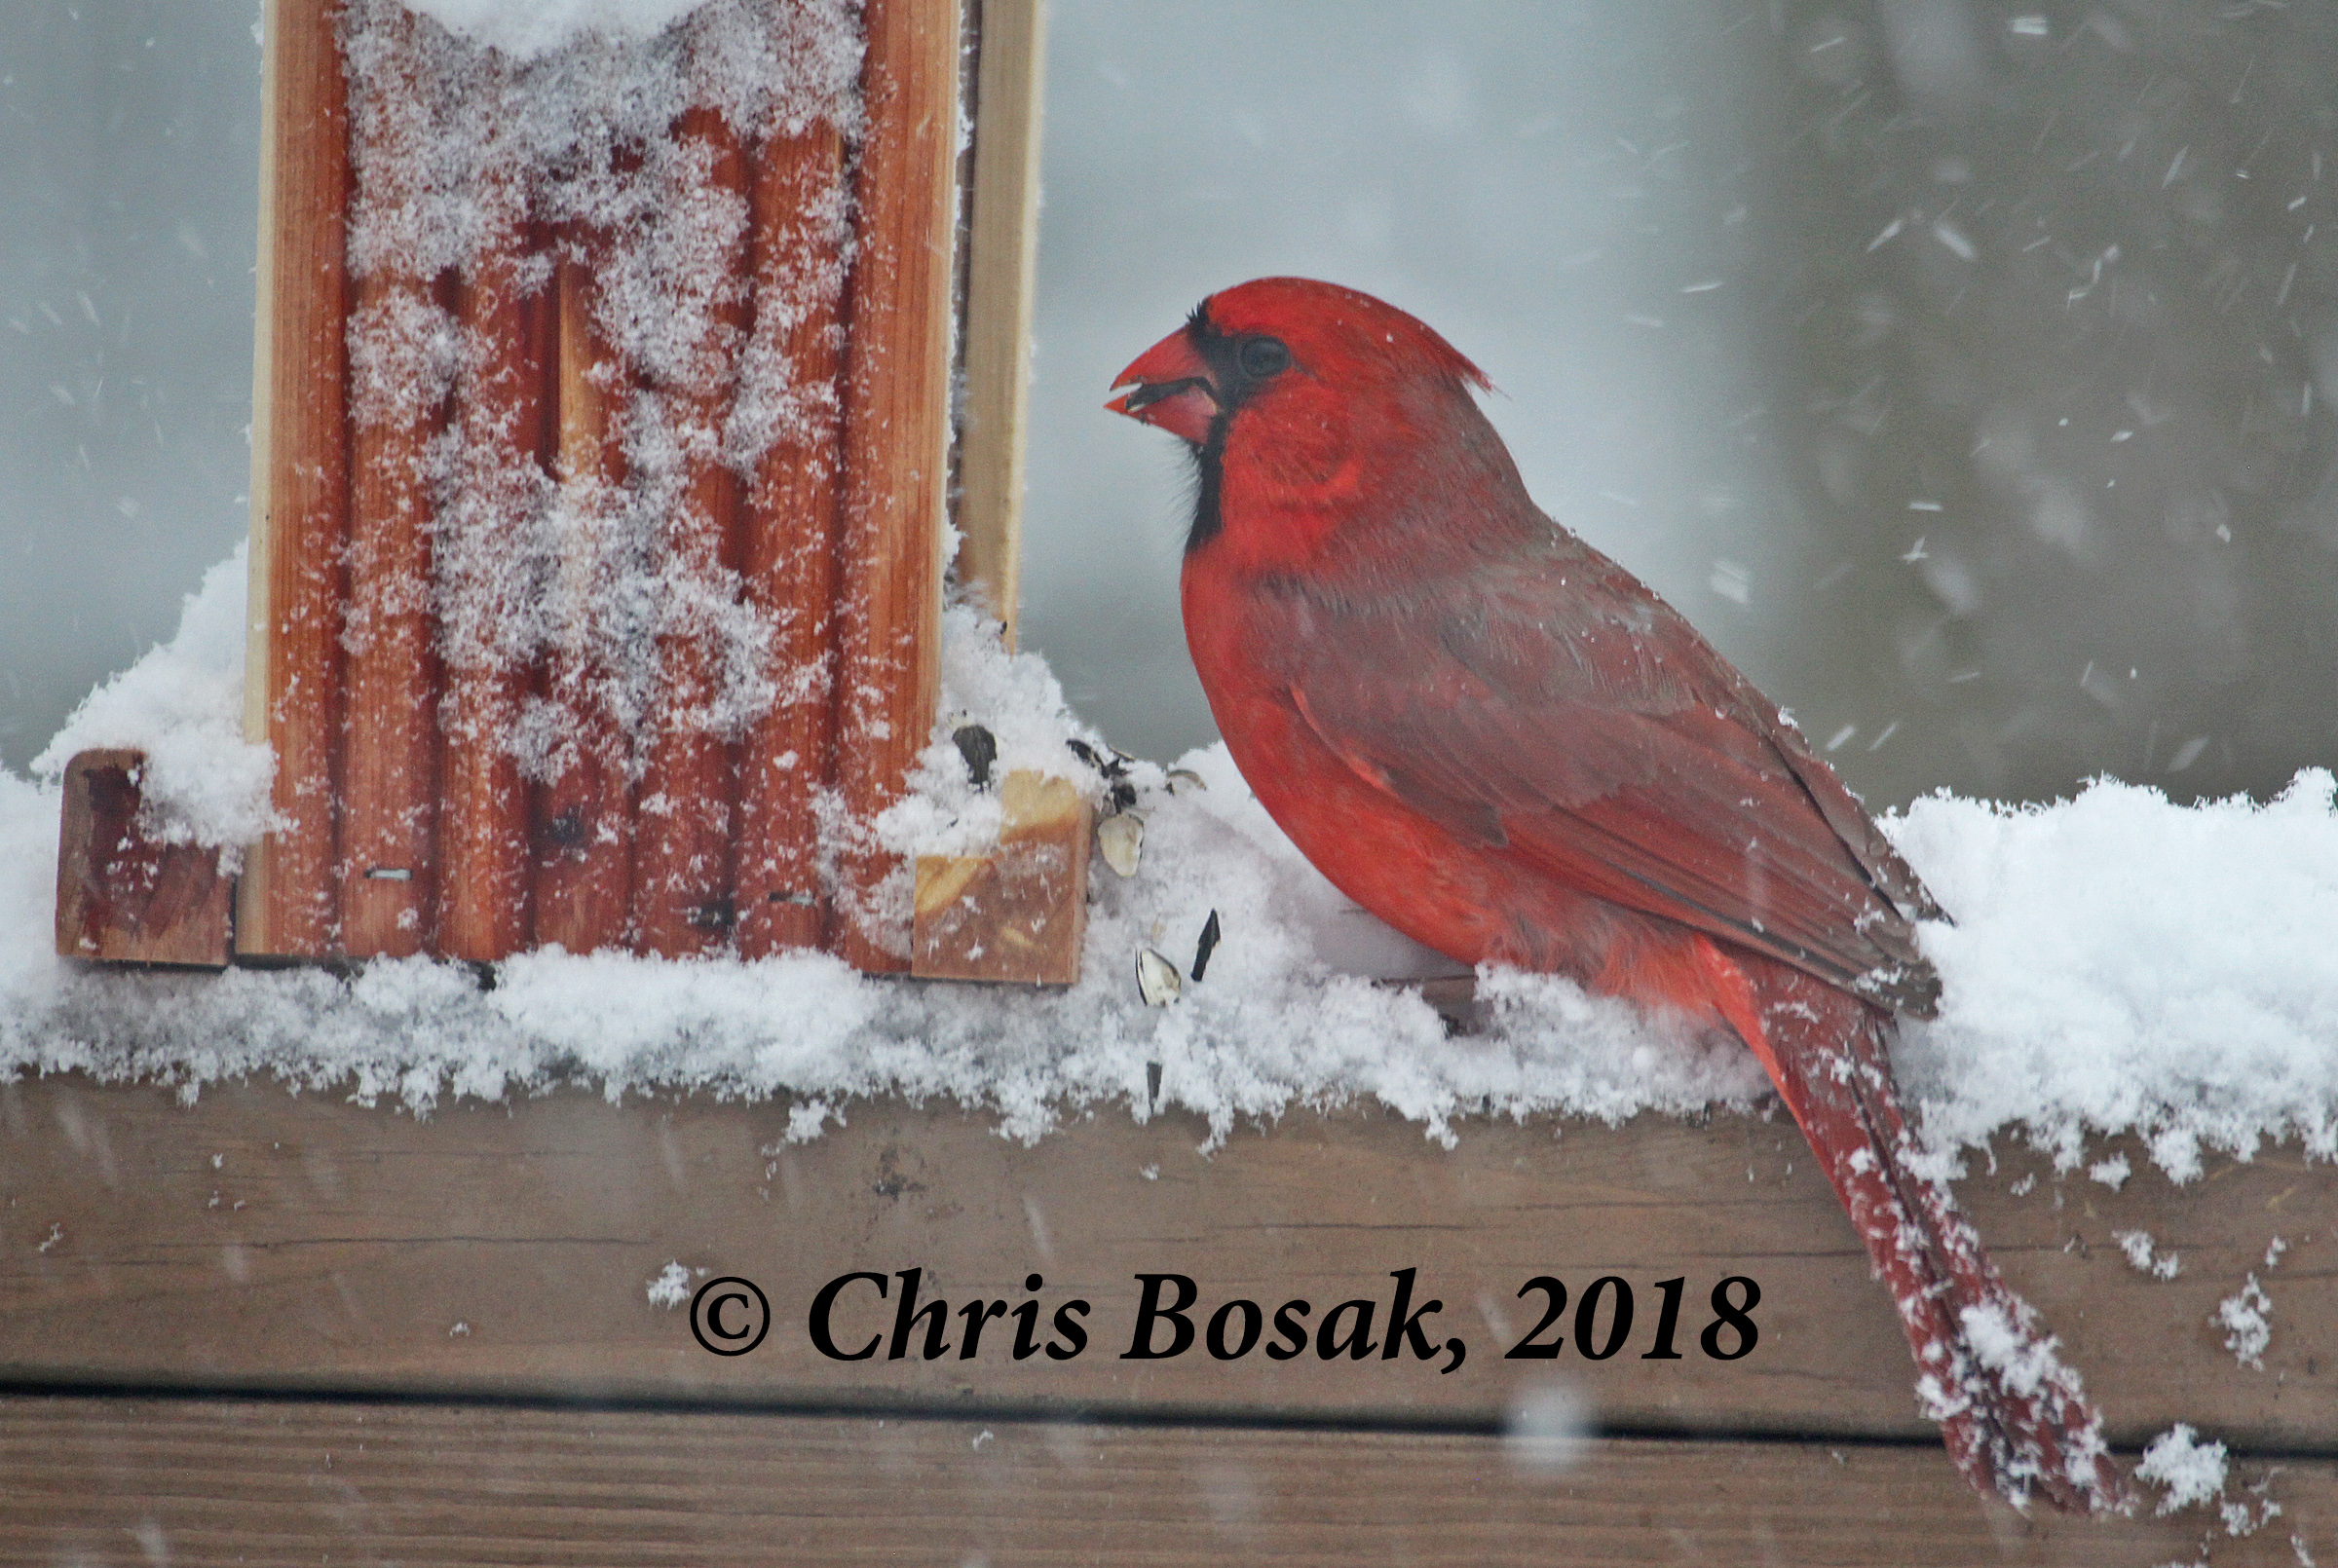 Photo by Chris Bosak A northern cardinal eats seeds from a feeder during a snow storm, March 2018.